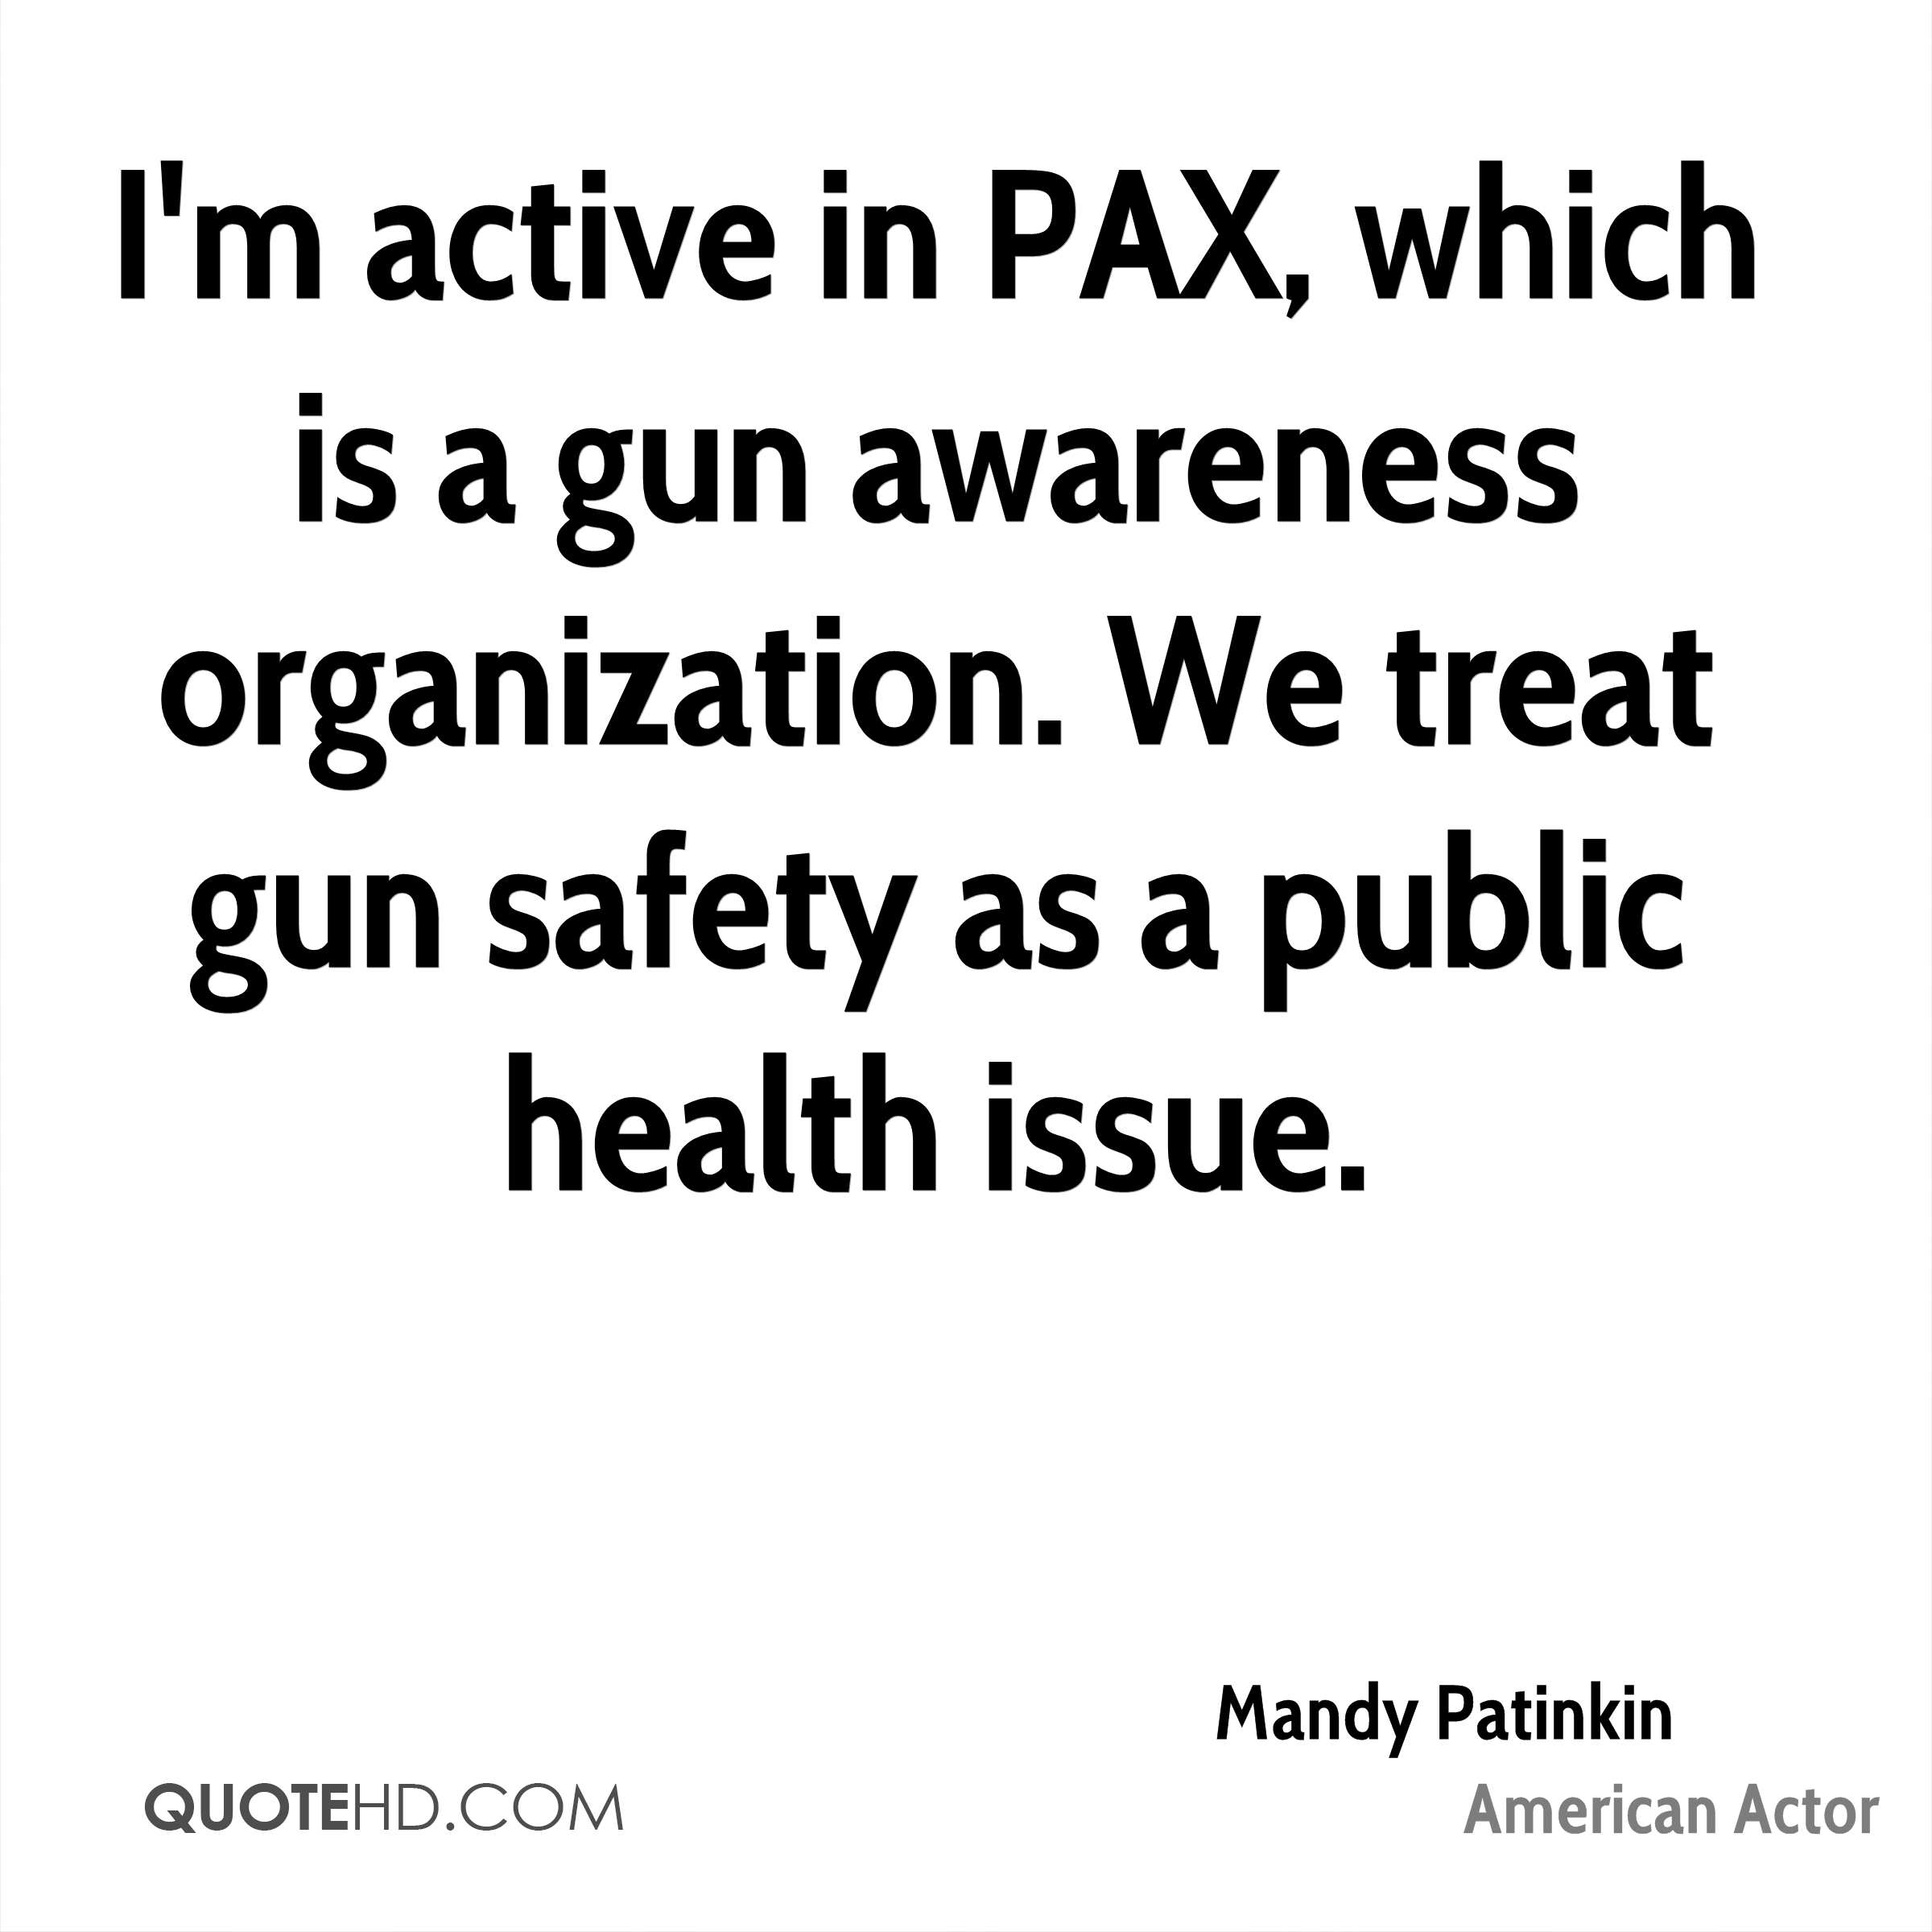 I'm active in PAX, which is a gun awareness organization. We treat gun safety as a public health issue.